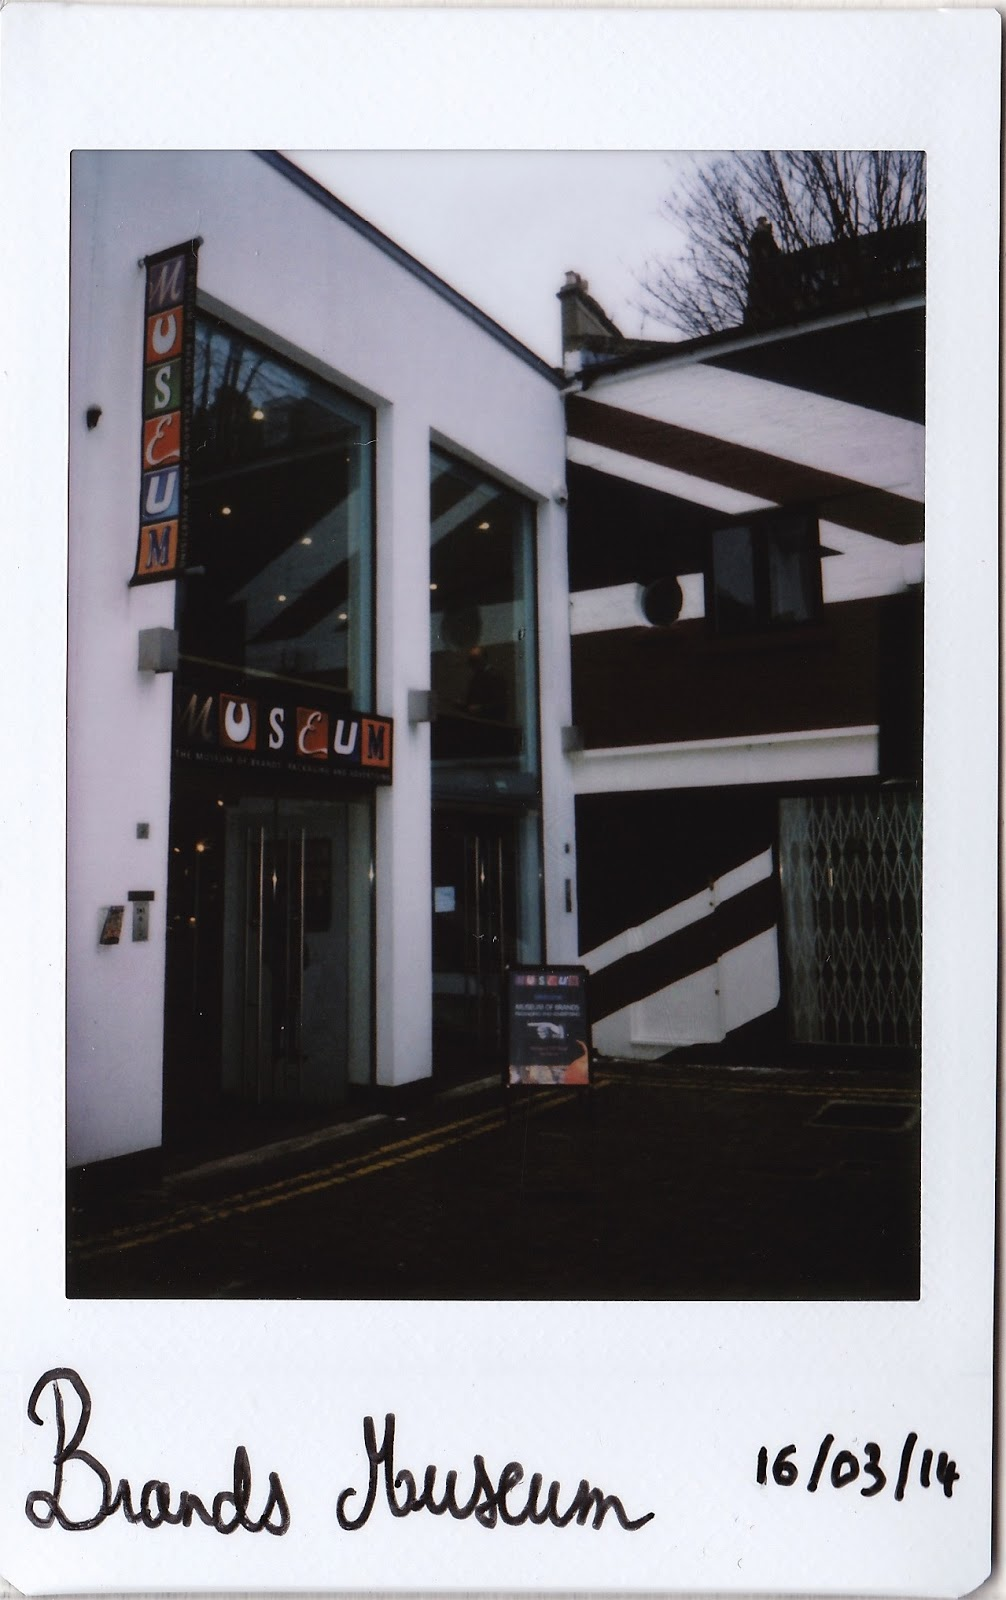 Polaroid of Brands Museum, Notting Hill